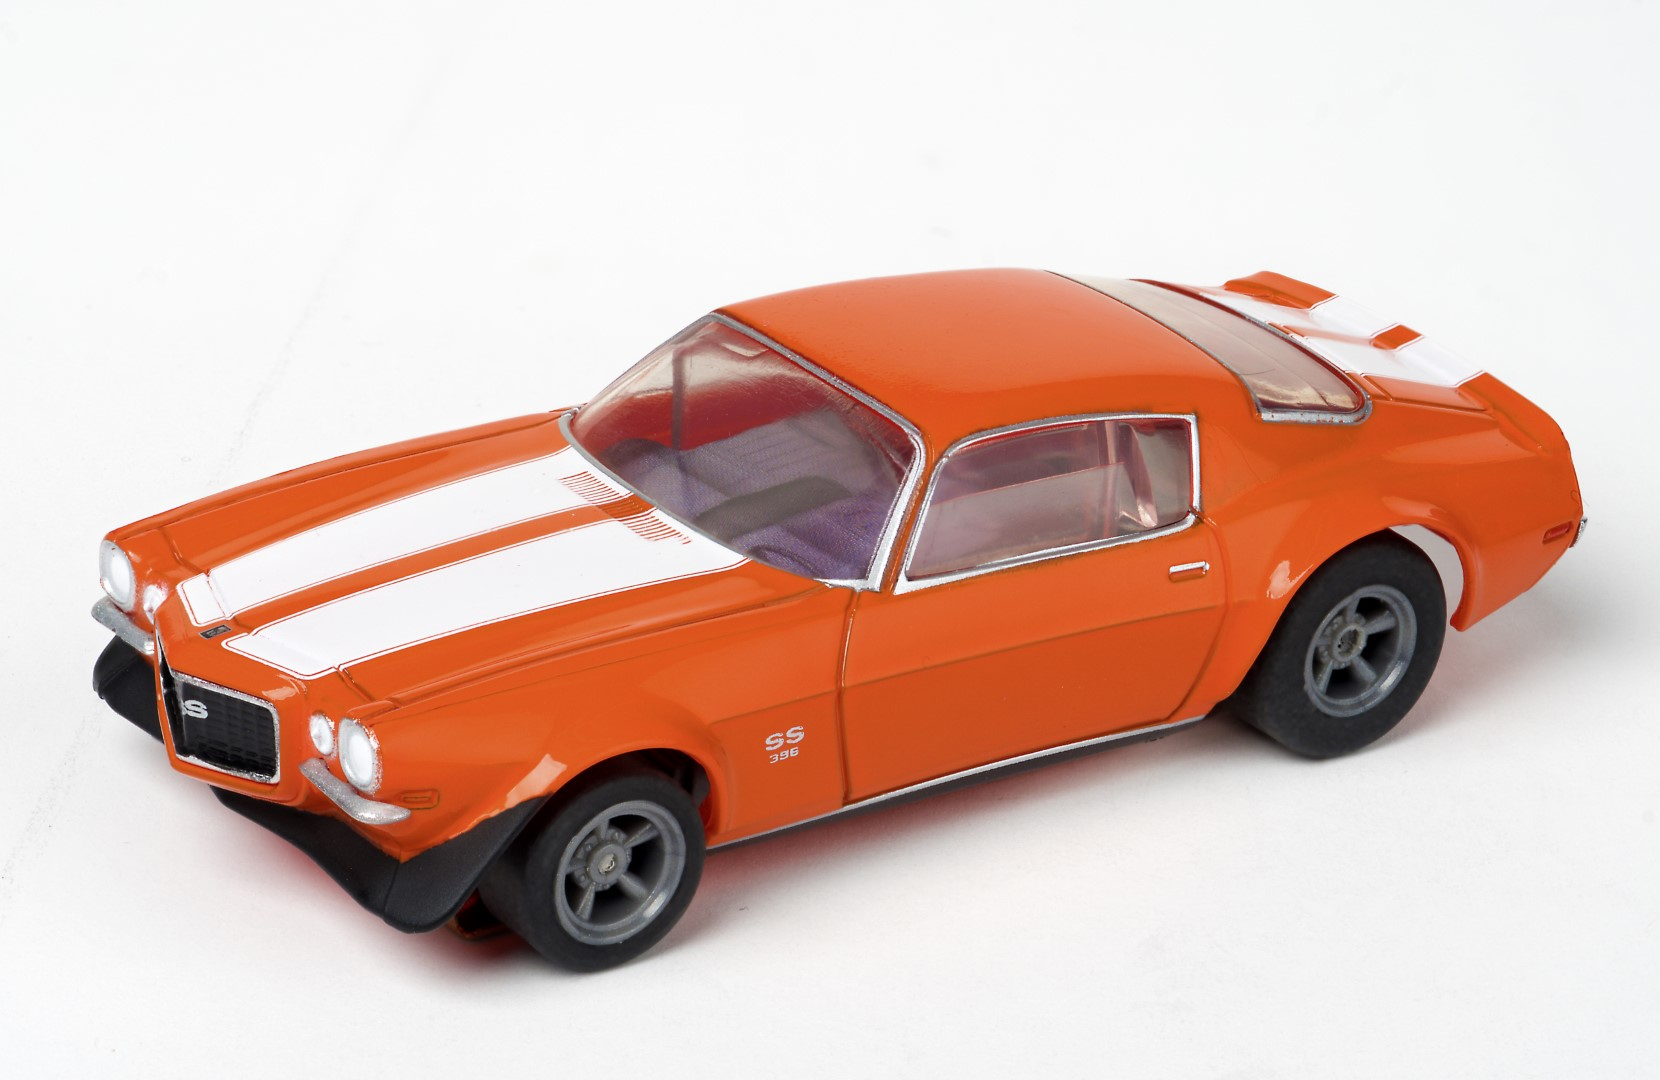 Camaro CLEAR – SS396 – Orange